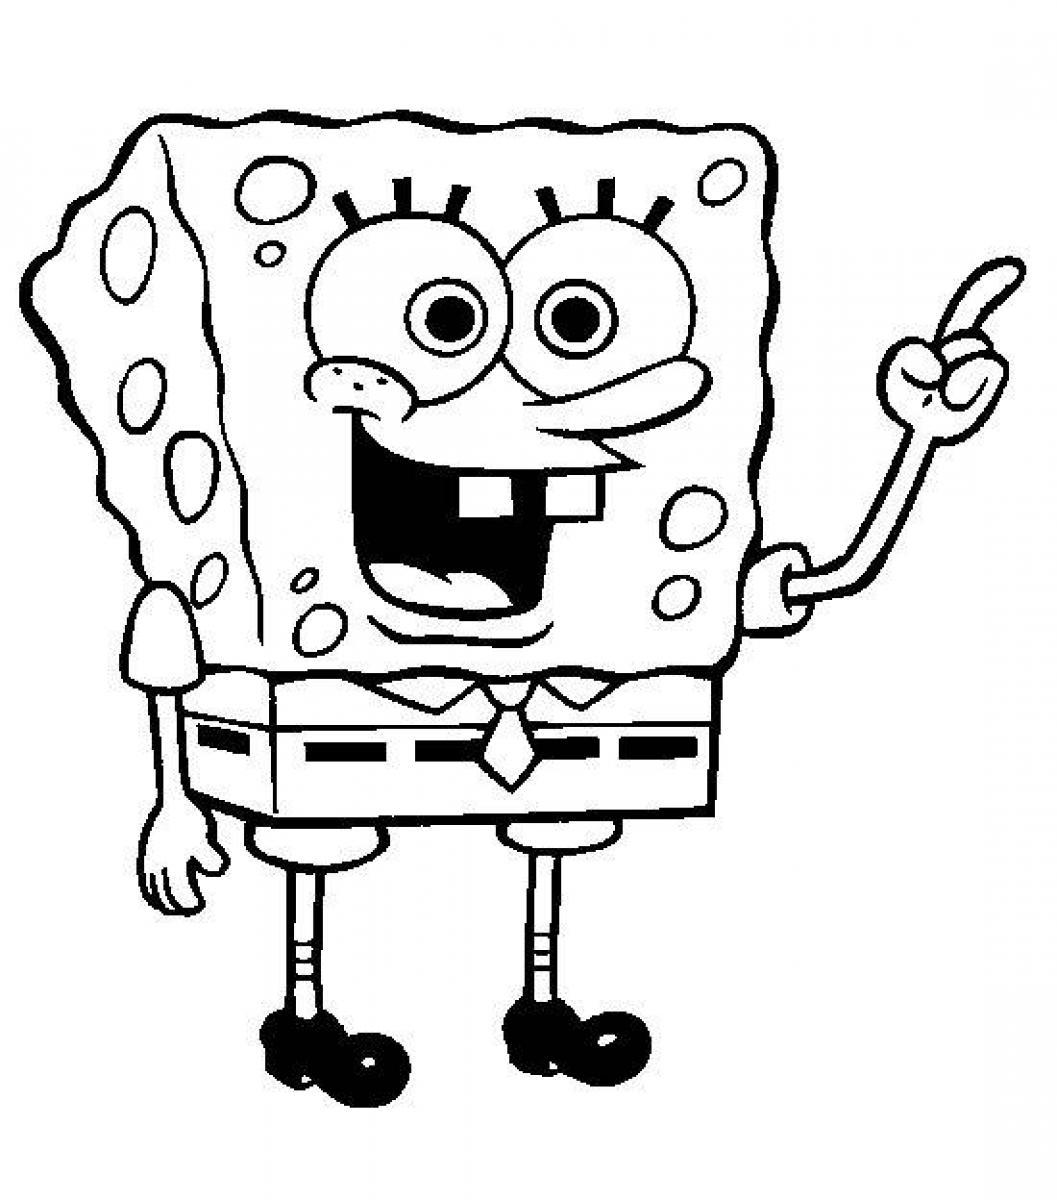 Printable coloring pages spongebob - Coloring Pages Spongebob Squarepants